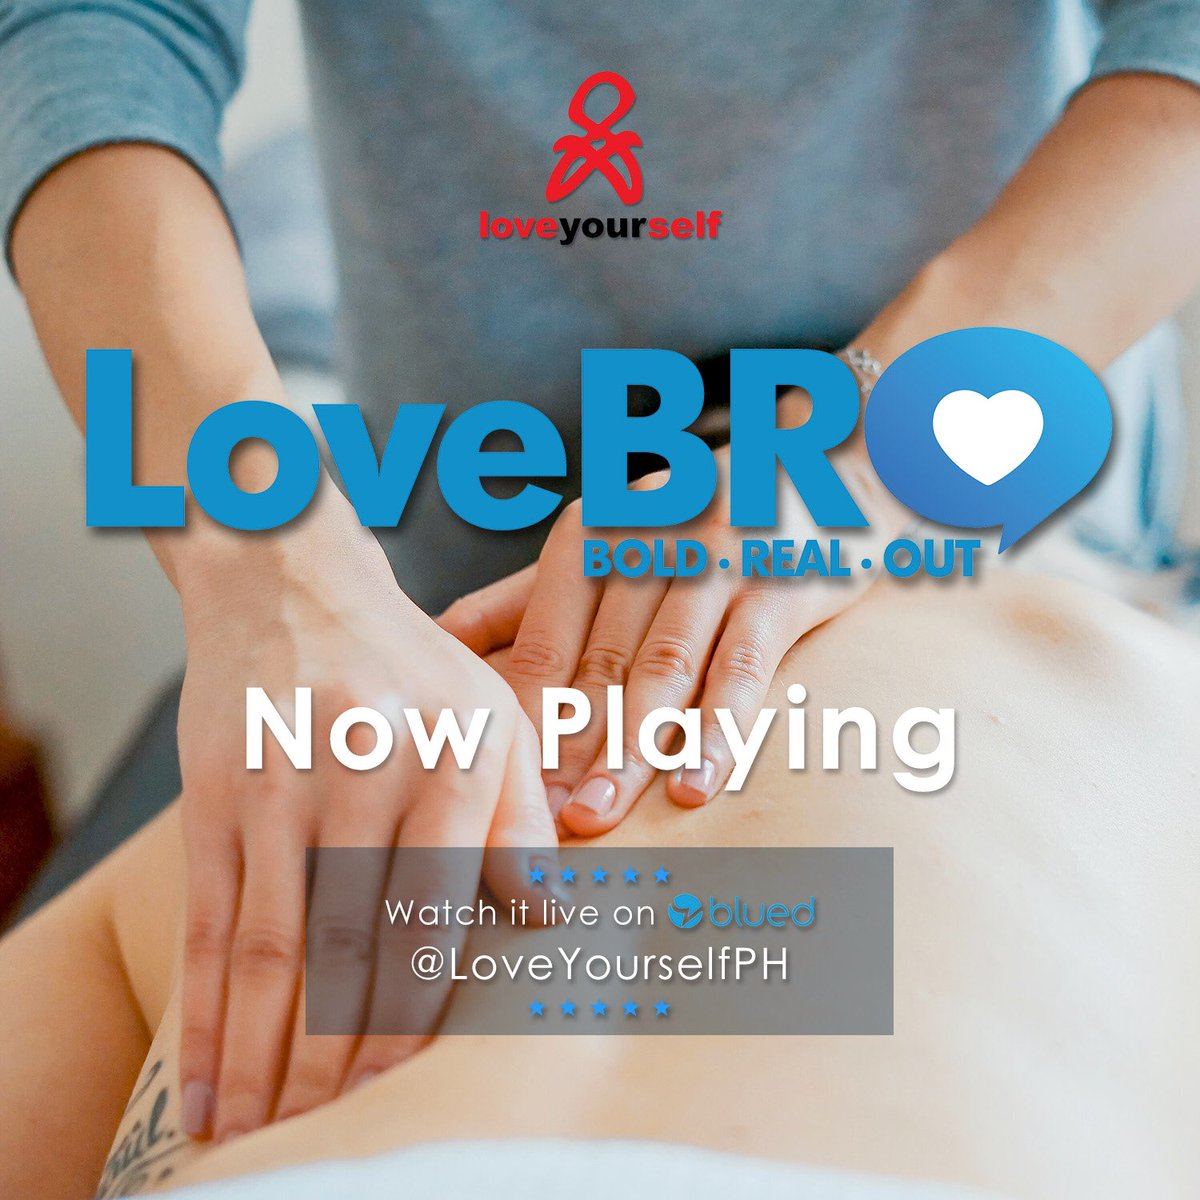 Now Playing: #LoveBro: Slowly, Masseurly Make sure to catch it before it ends! Download Blued app now at bit.ly/LoveBro and follow @LoveYourselfPh